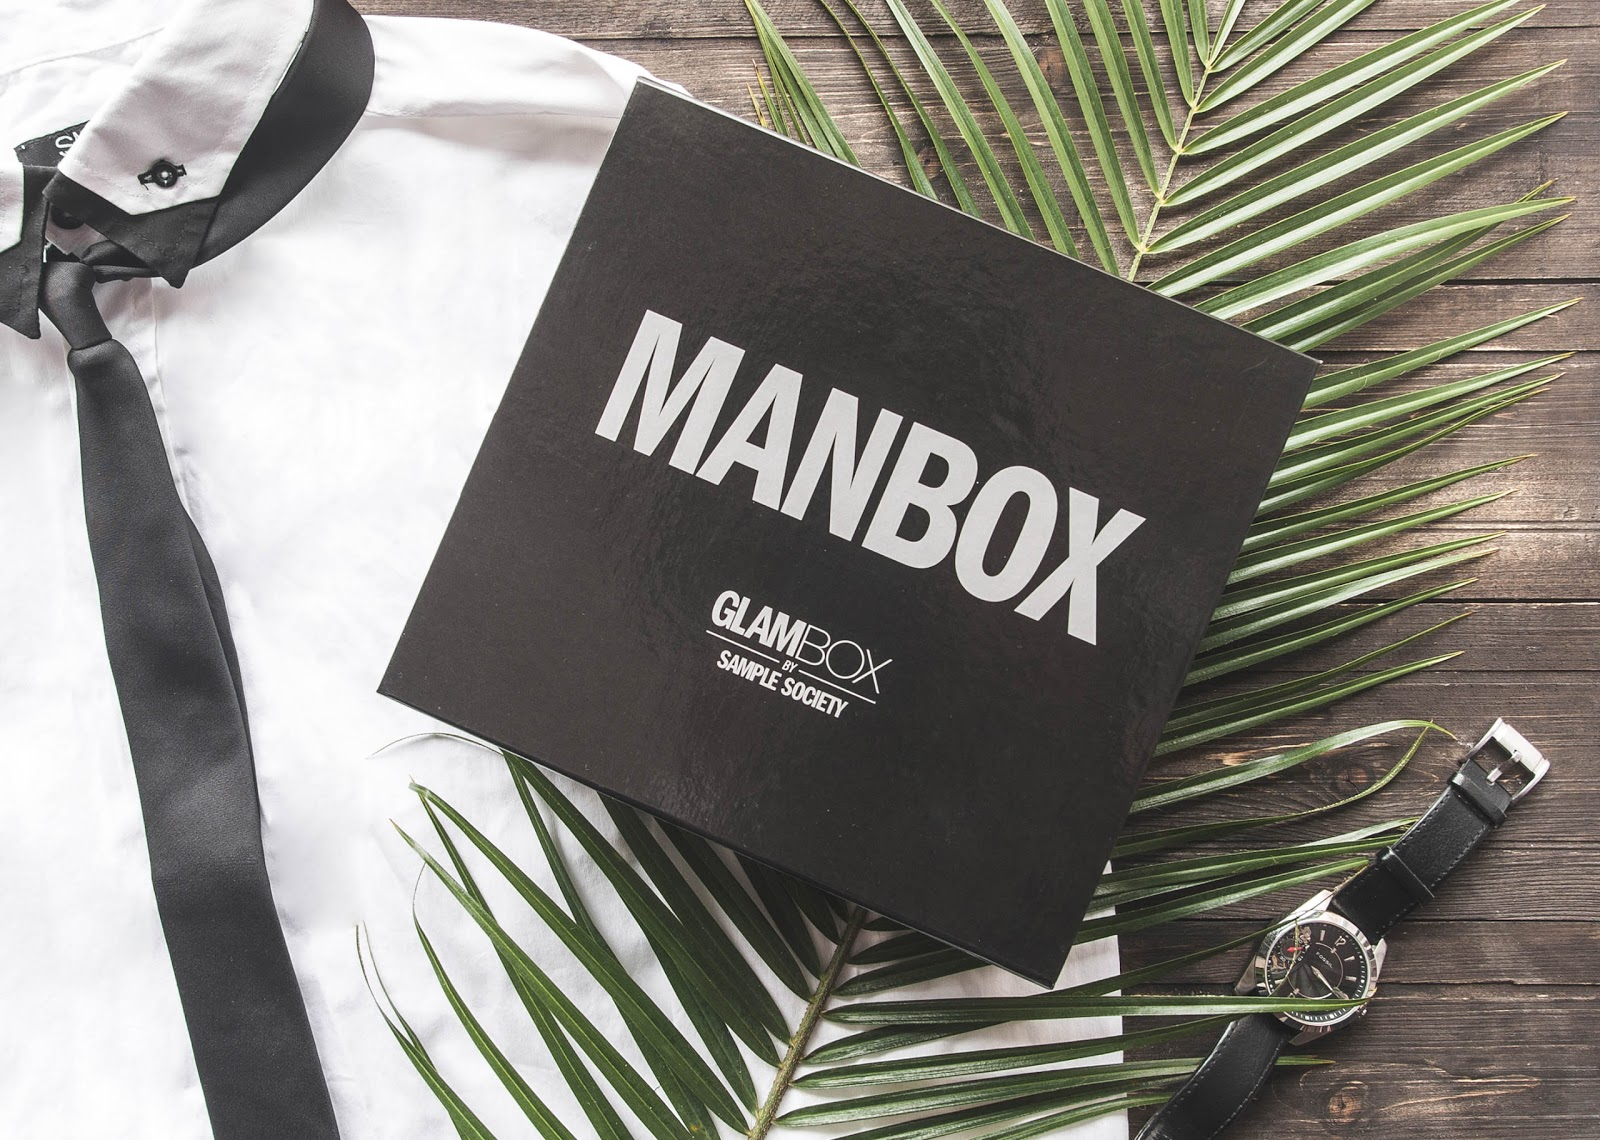 http://www.recklessdiary.ru/2017/05/manbox-2017-mart-sample-society-beauty-box.html